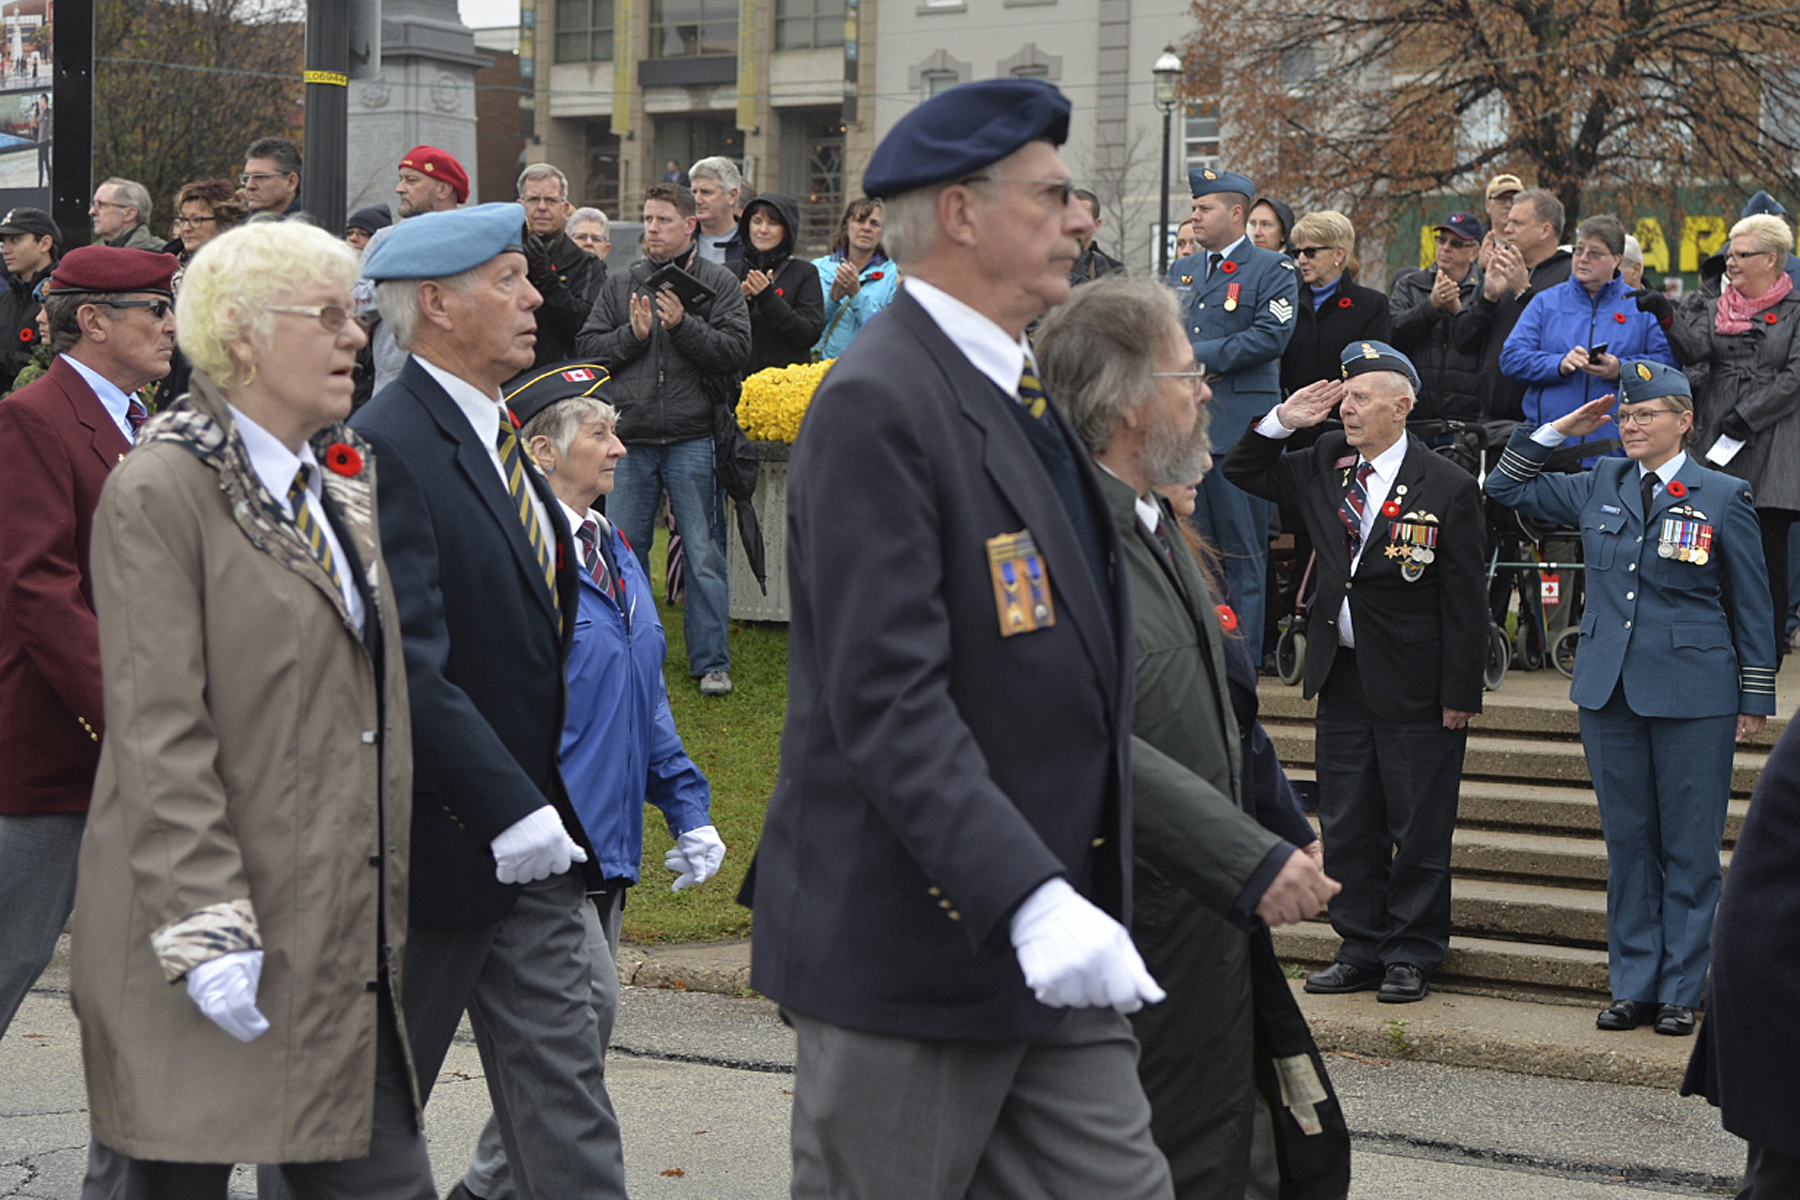 Members of the veterans contingent receive salutes from 16 Wing Borden, Ontario, commander Colonel Yve Thomson (right) and veteran Tom Carney, and applause from those attending the November 11, 2015, Remembrance Day ceremony held in Barrie, Ontario. PHOTO: Master Corporal Miranda Langguth